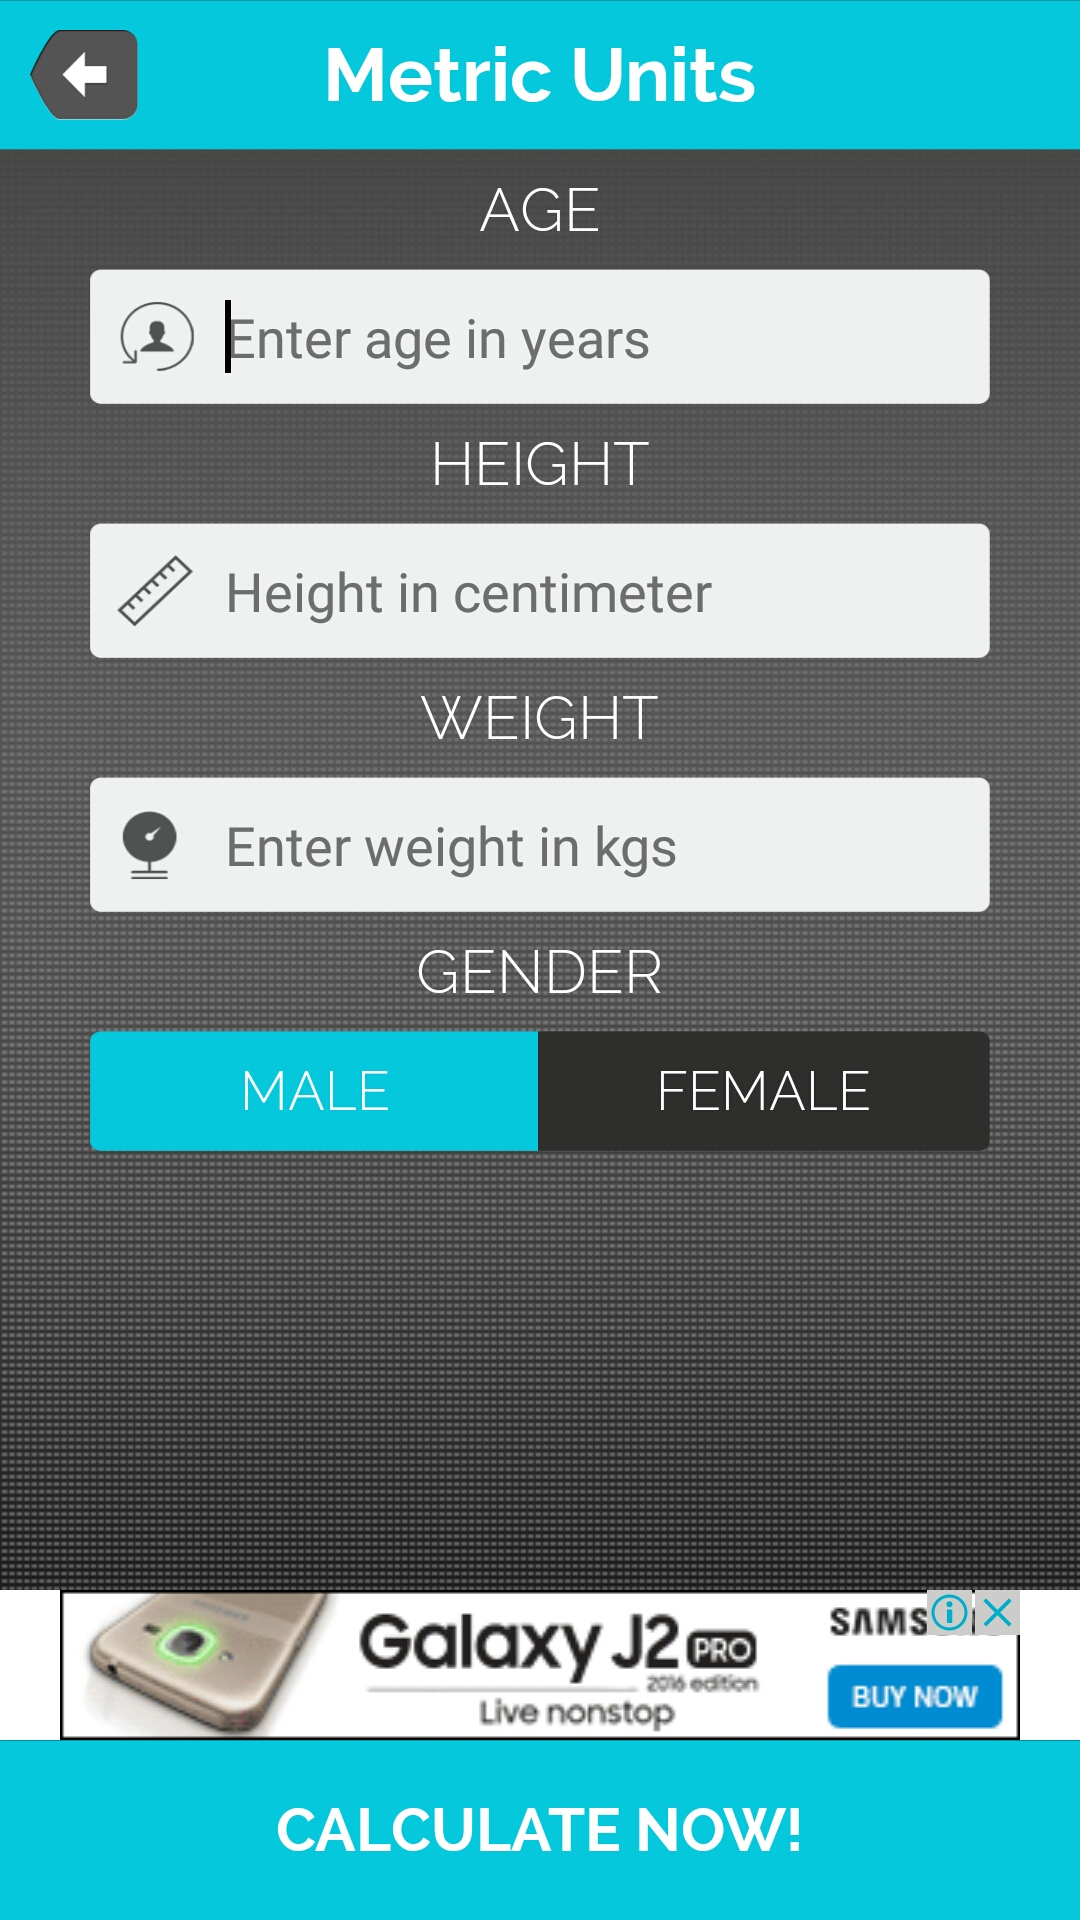 Bmi Calculator For Android Full Application With Psd